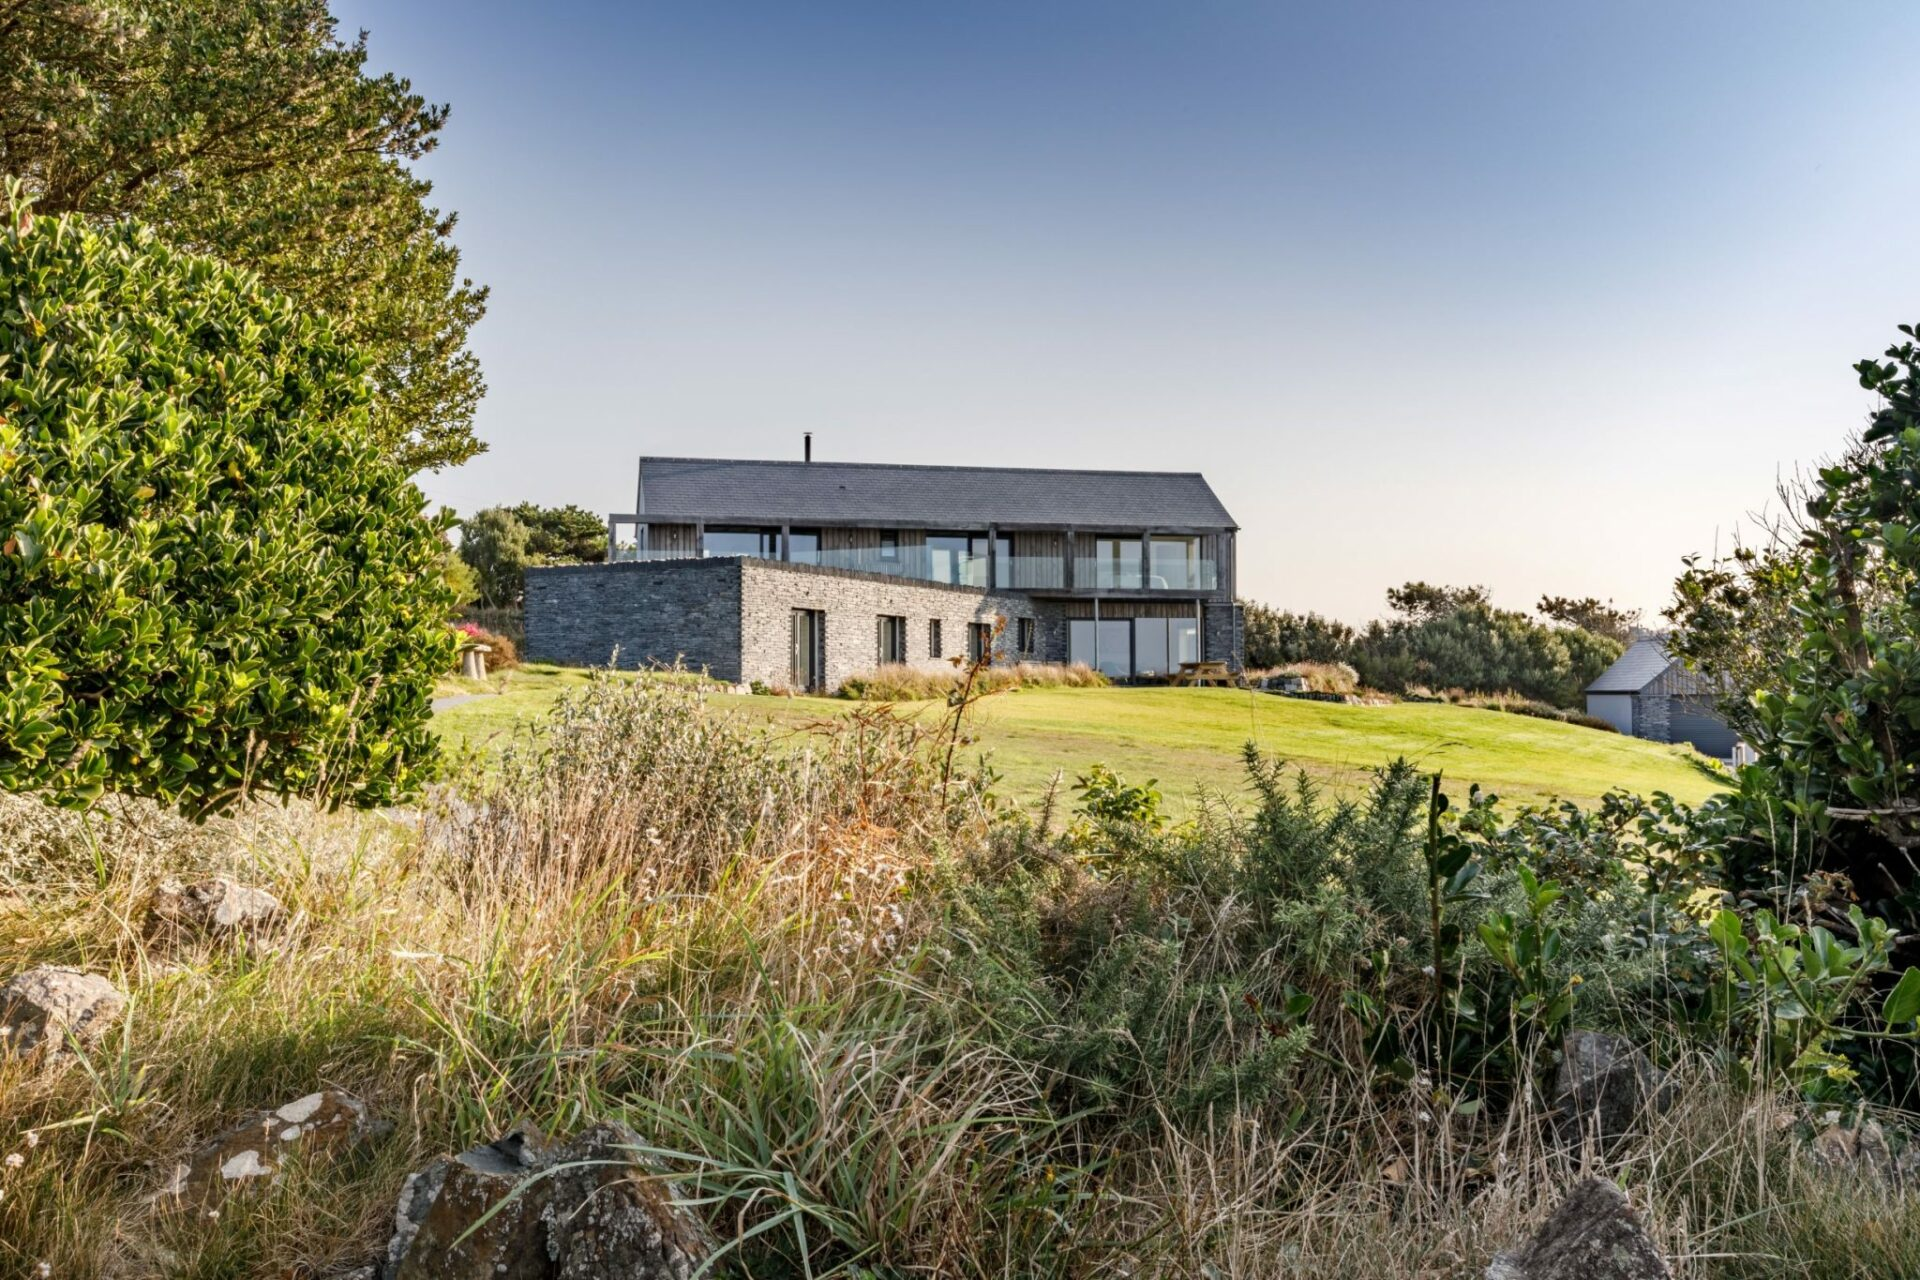 ARCO2 in Bodmin designed this fantastic sustainable home with views across Polurrian Bay